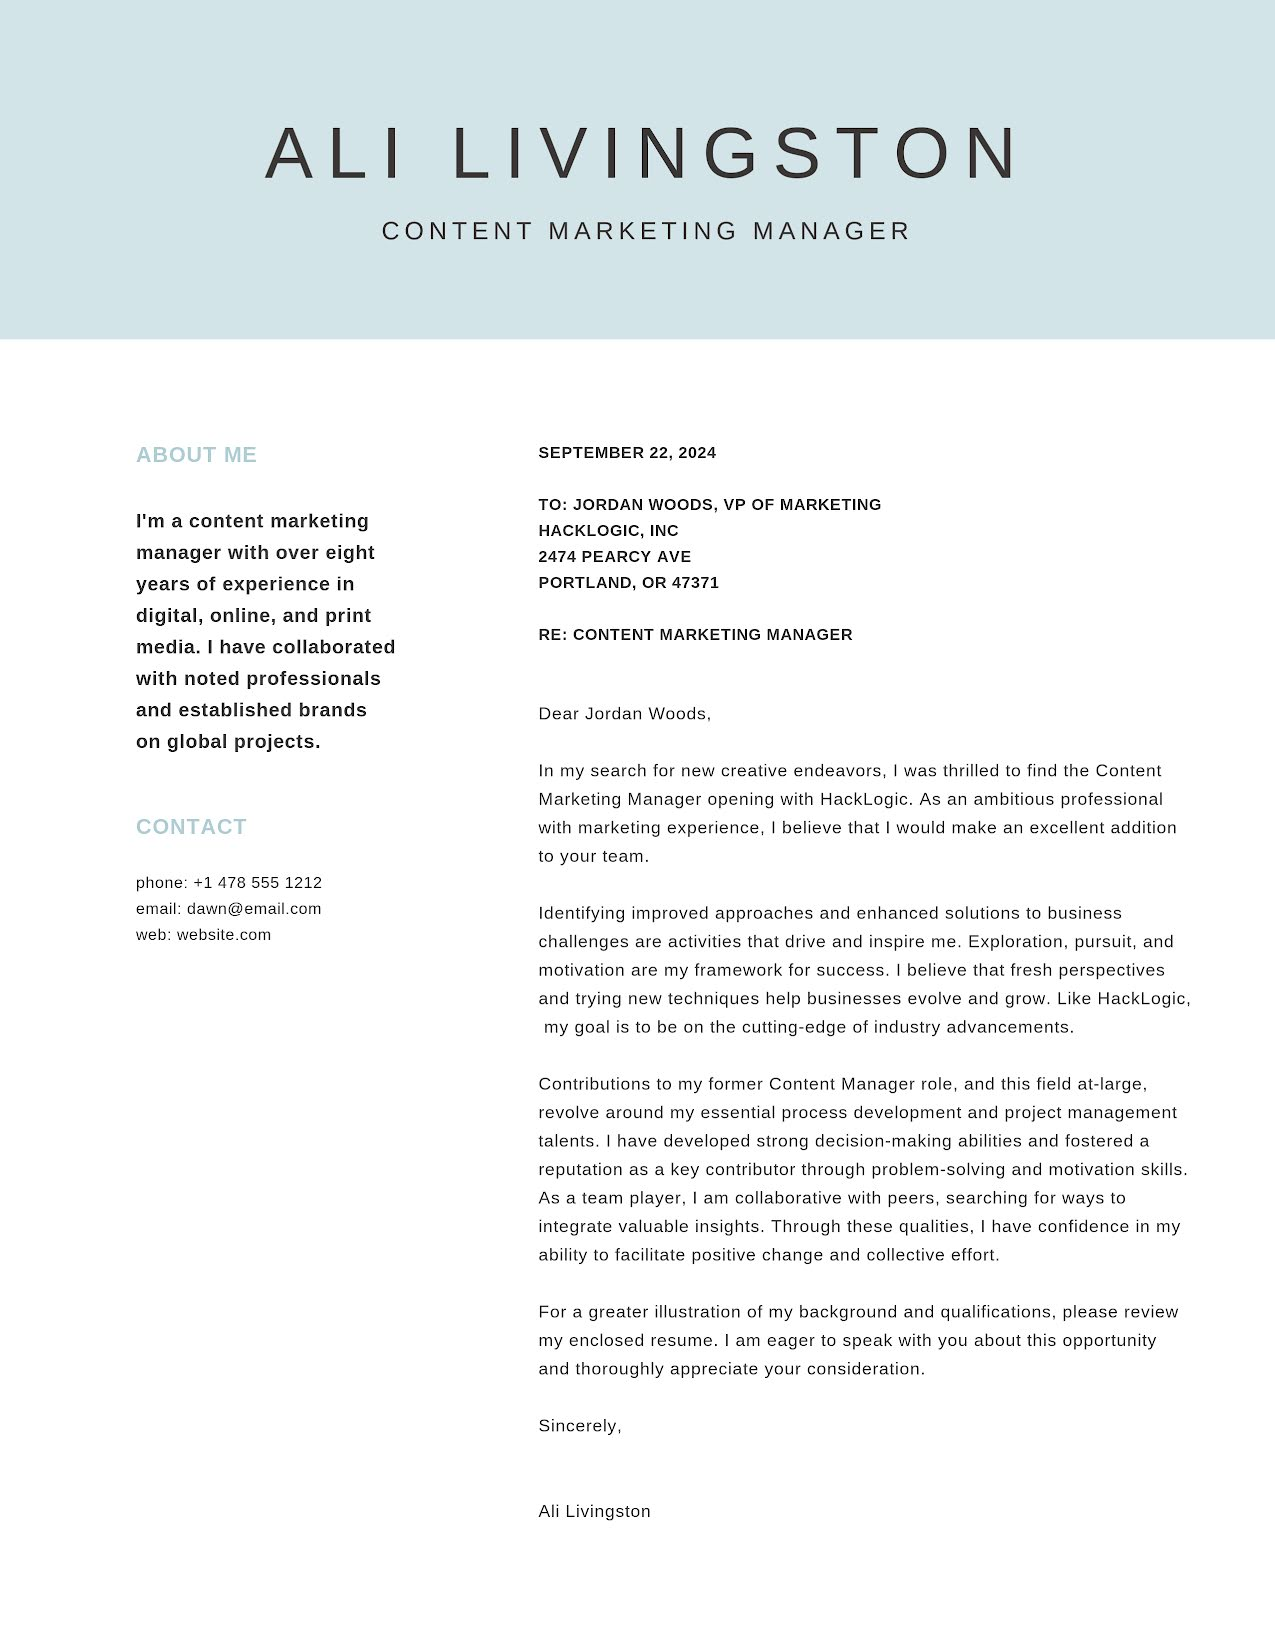 Ali Livingston - Cover Letter Template